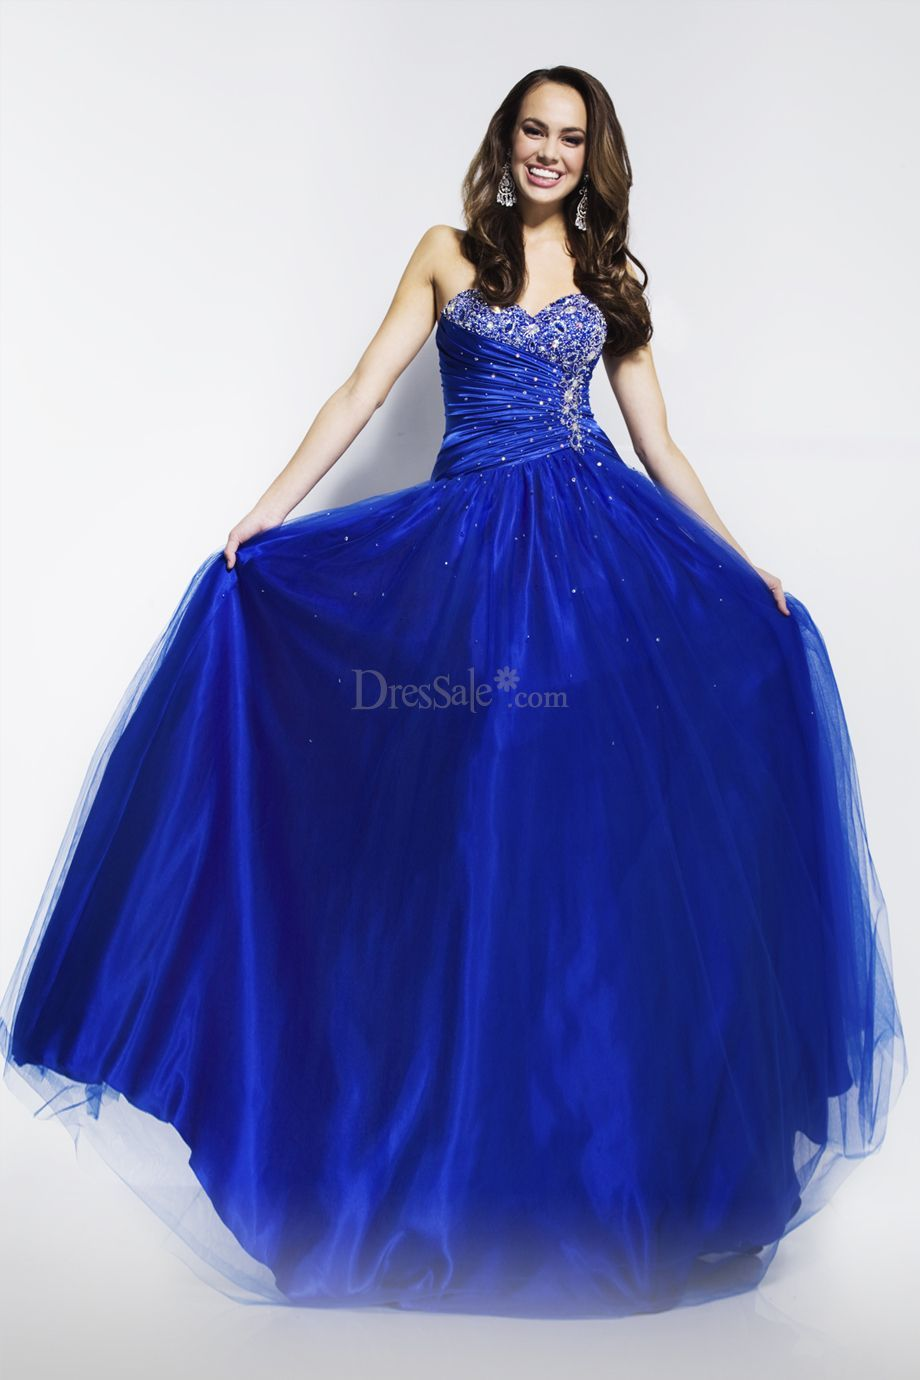 Fascinating Royal Blue Prom Dress With Adorable Sweetheart Neckline Prom Dresses Blue Prom Dresses Long Prom Dresses Ball Gown [ 1380 x 920 Pixel ]